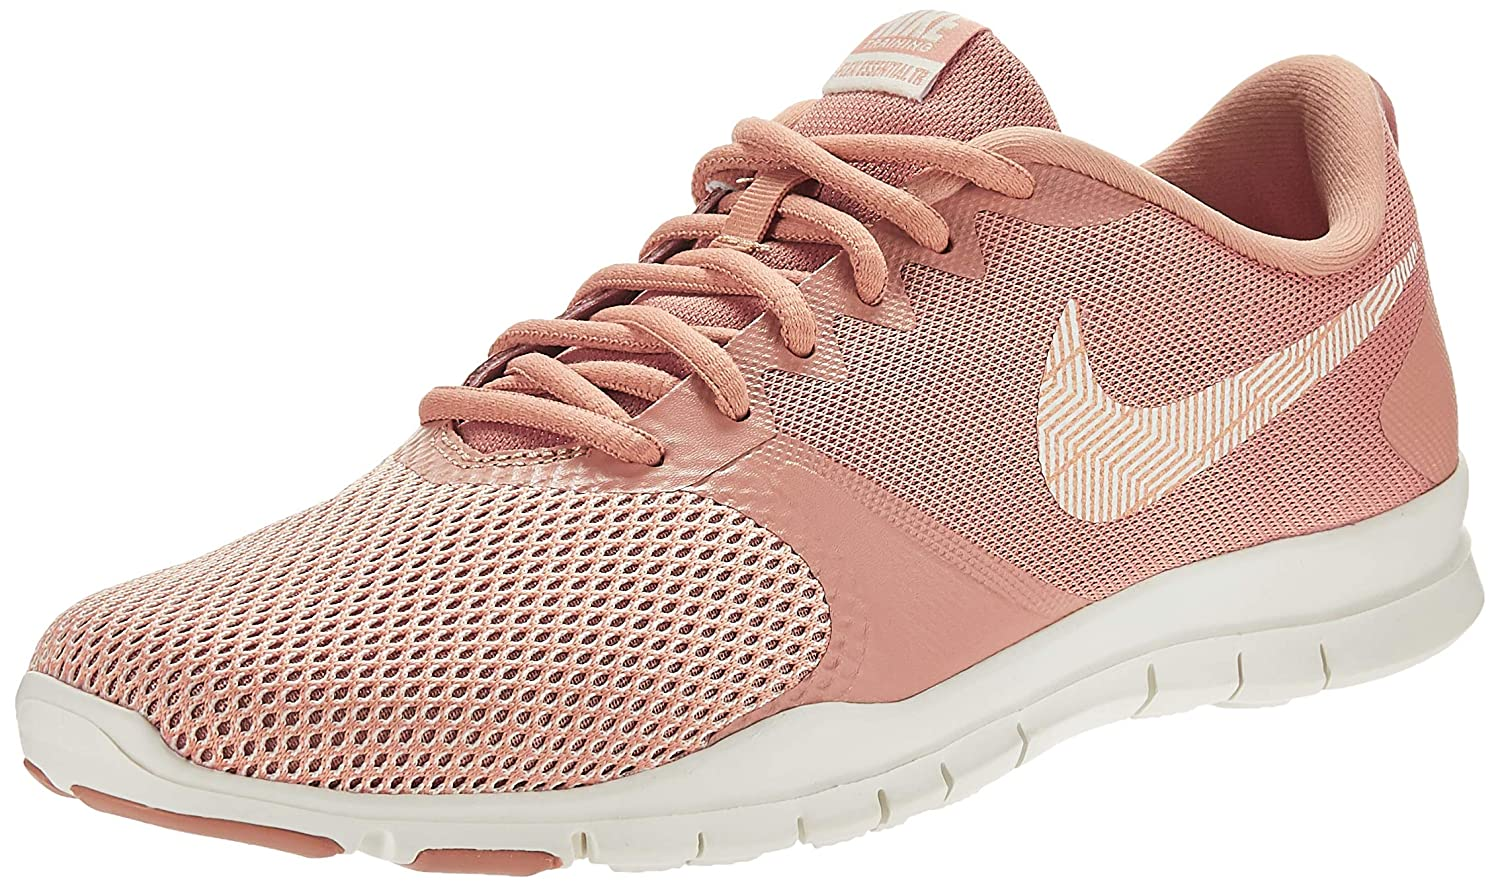 MultiCouleure (Rose or Sail Guava Ice Mtlc rouge Bronze 000) Nike WMNS Flex Essential TR, Chaussures de Fitness Femme 36.5 EU